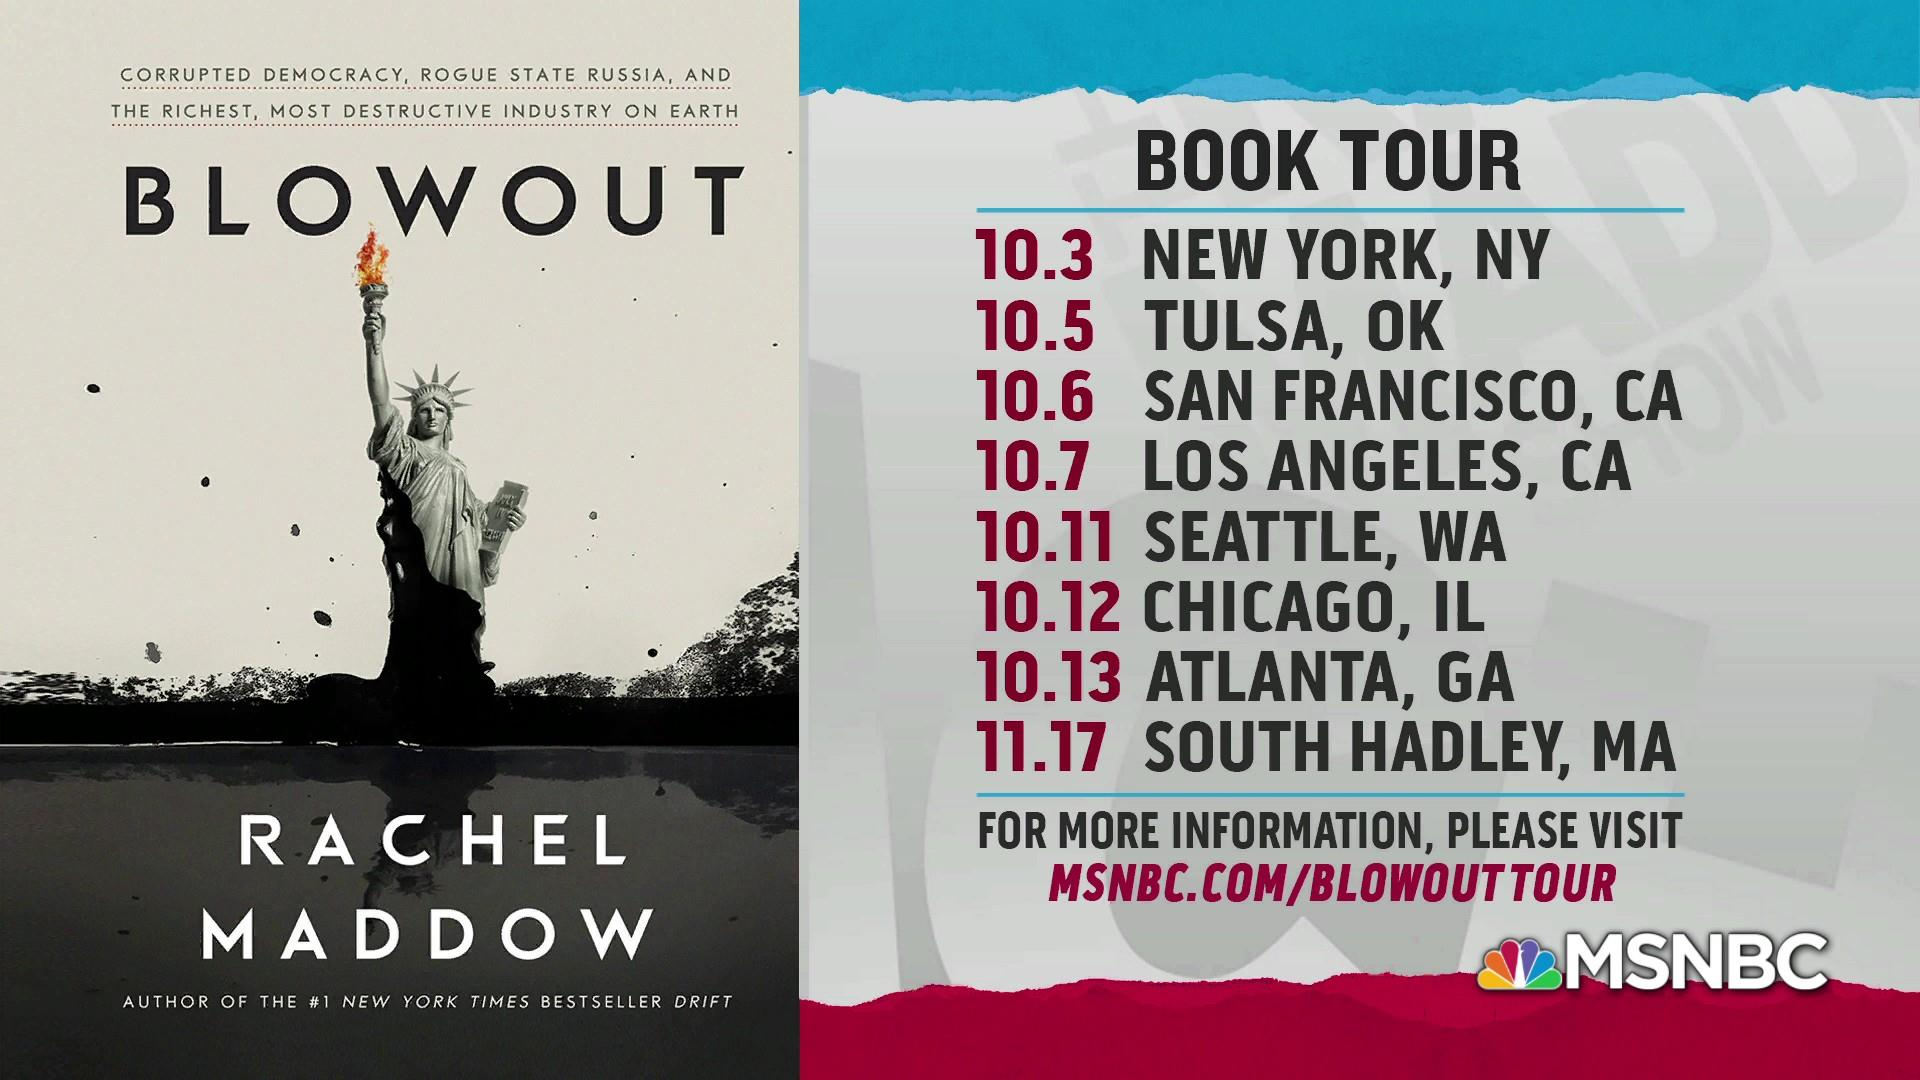 Blowout book tour dates and locations announced!